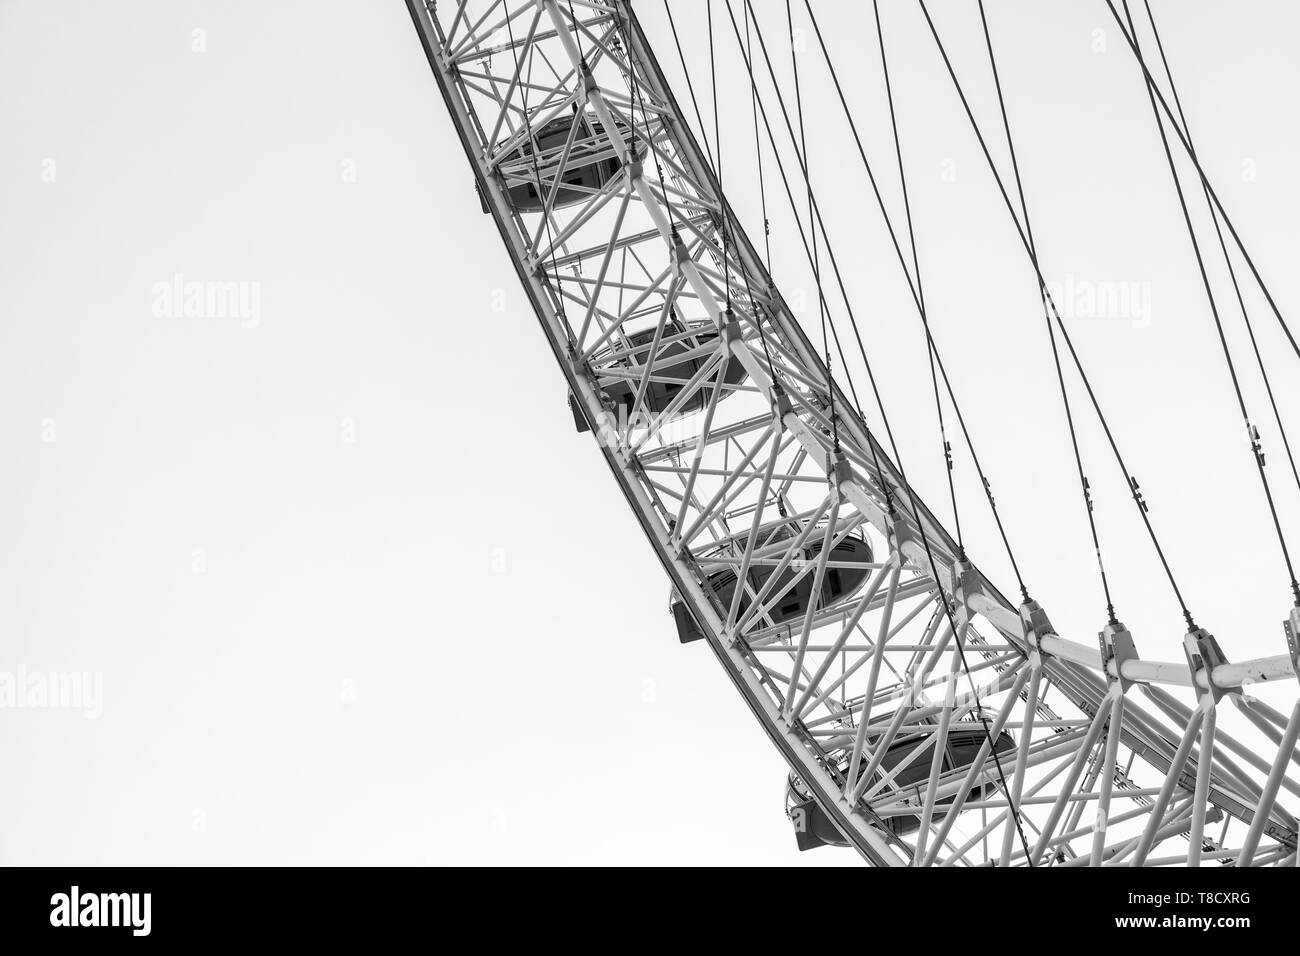 London, United Kingdom - October 31, 2017: Fragment of London Eye giant Ferris wheel mounted on the South Bank of River Thames in London, black and wh - Stock Image